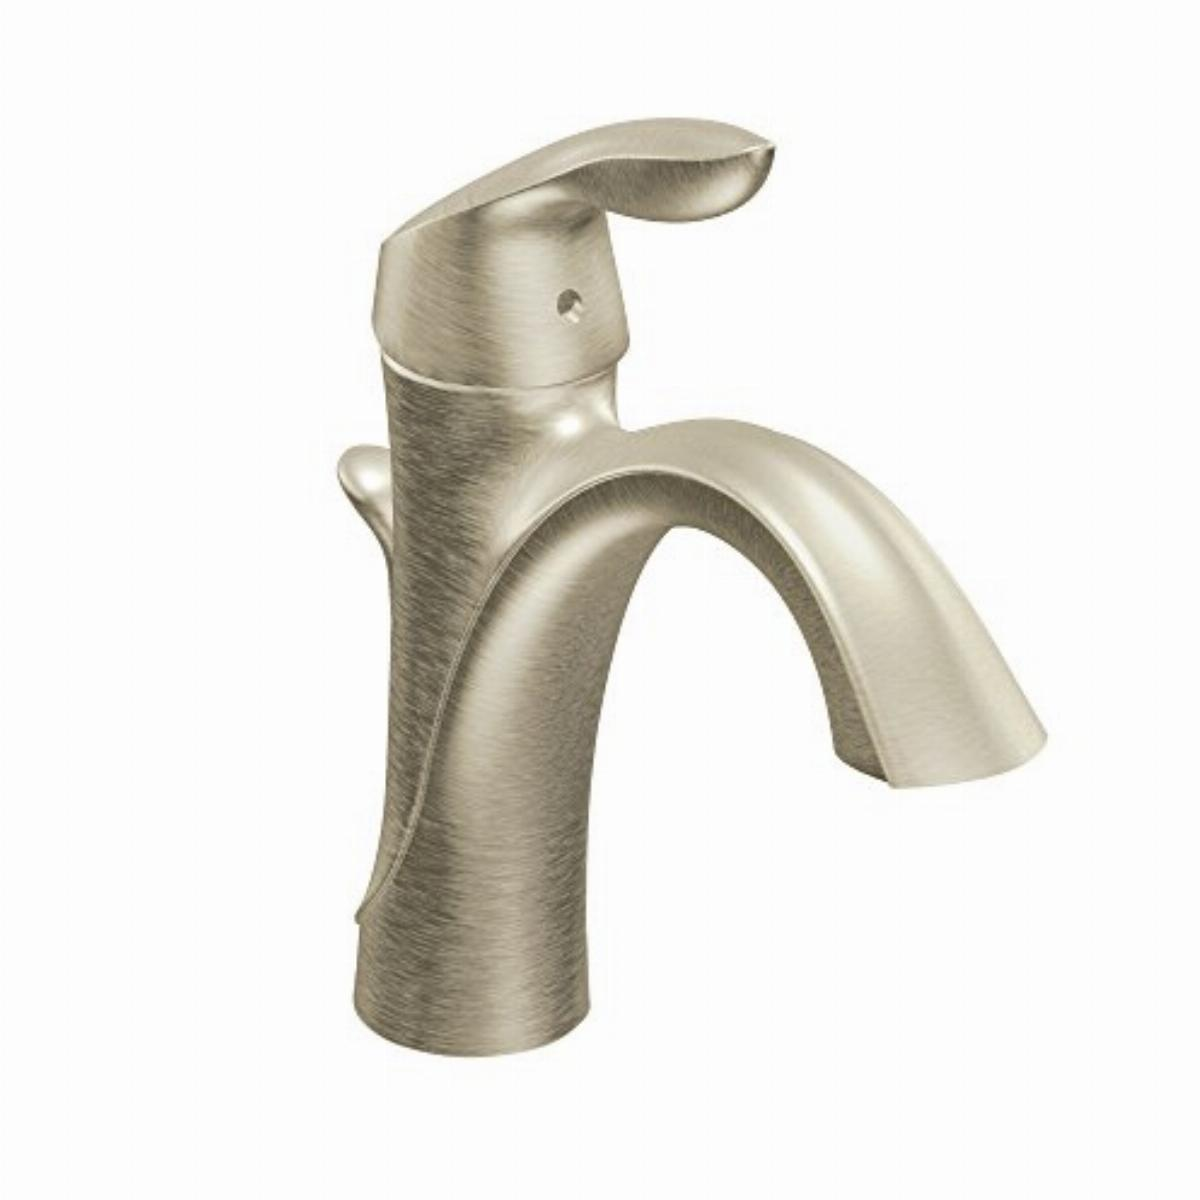 moen 6400bn eva one handle single hole bathroom sink faucet with optional deckplate and drain assembly brushed nickel